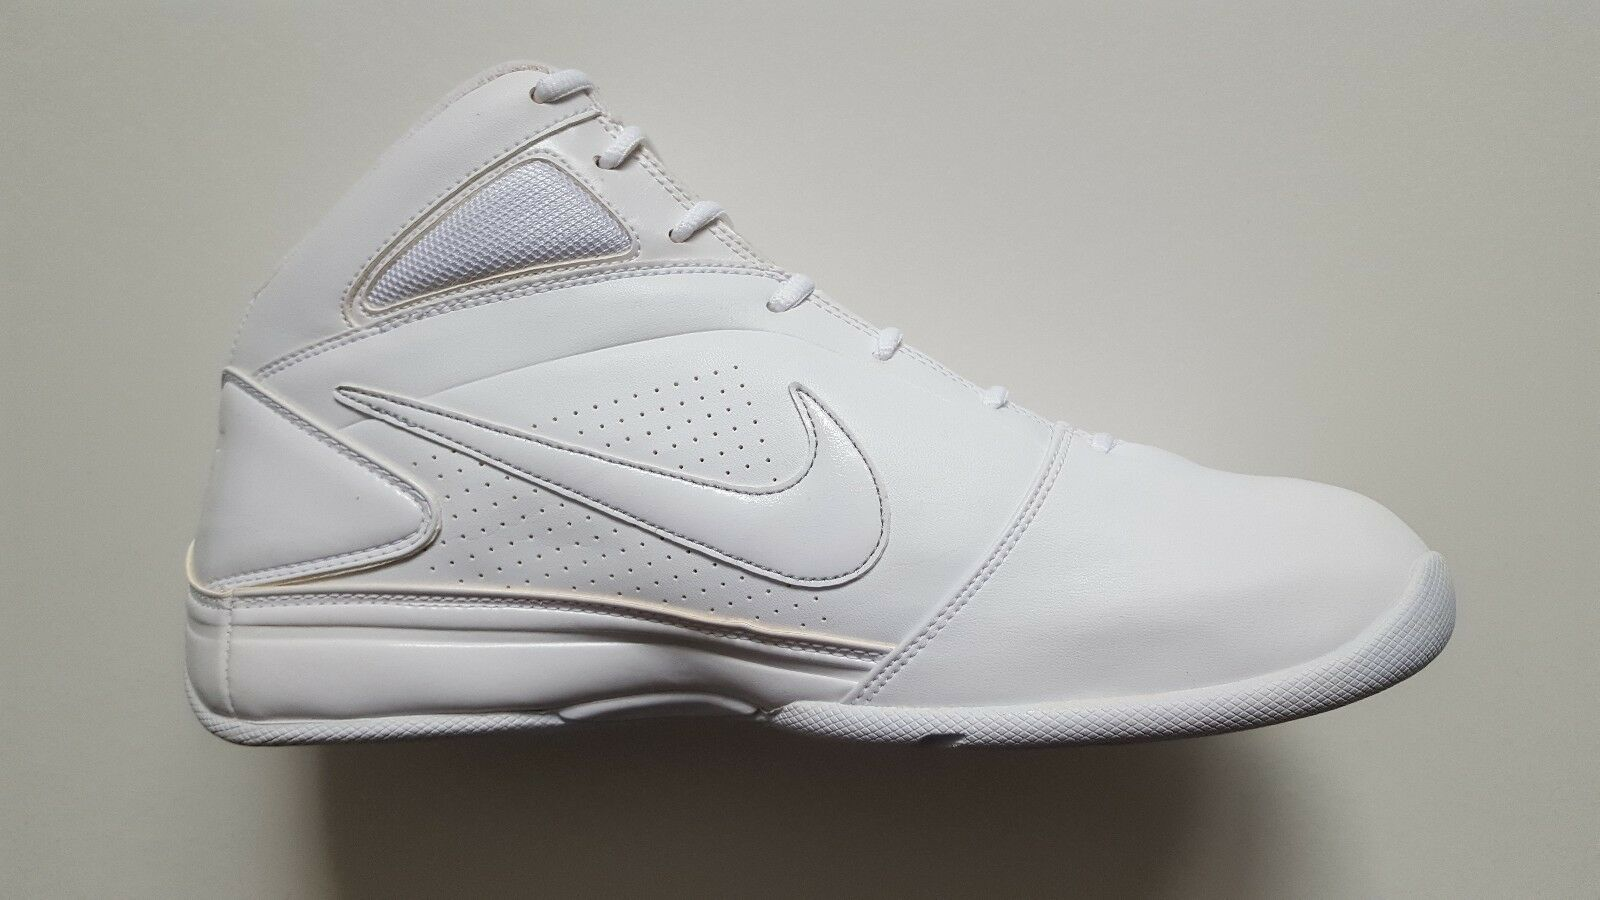 Nike Classic Air Press Basketball shoes UK Size 11 Brand New.